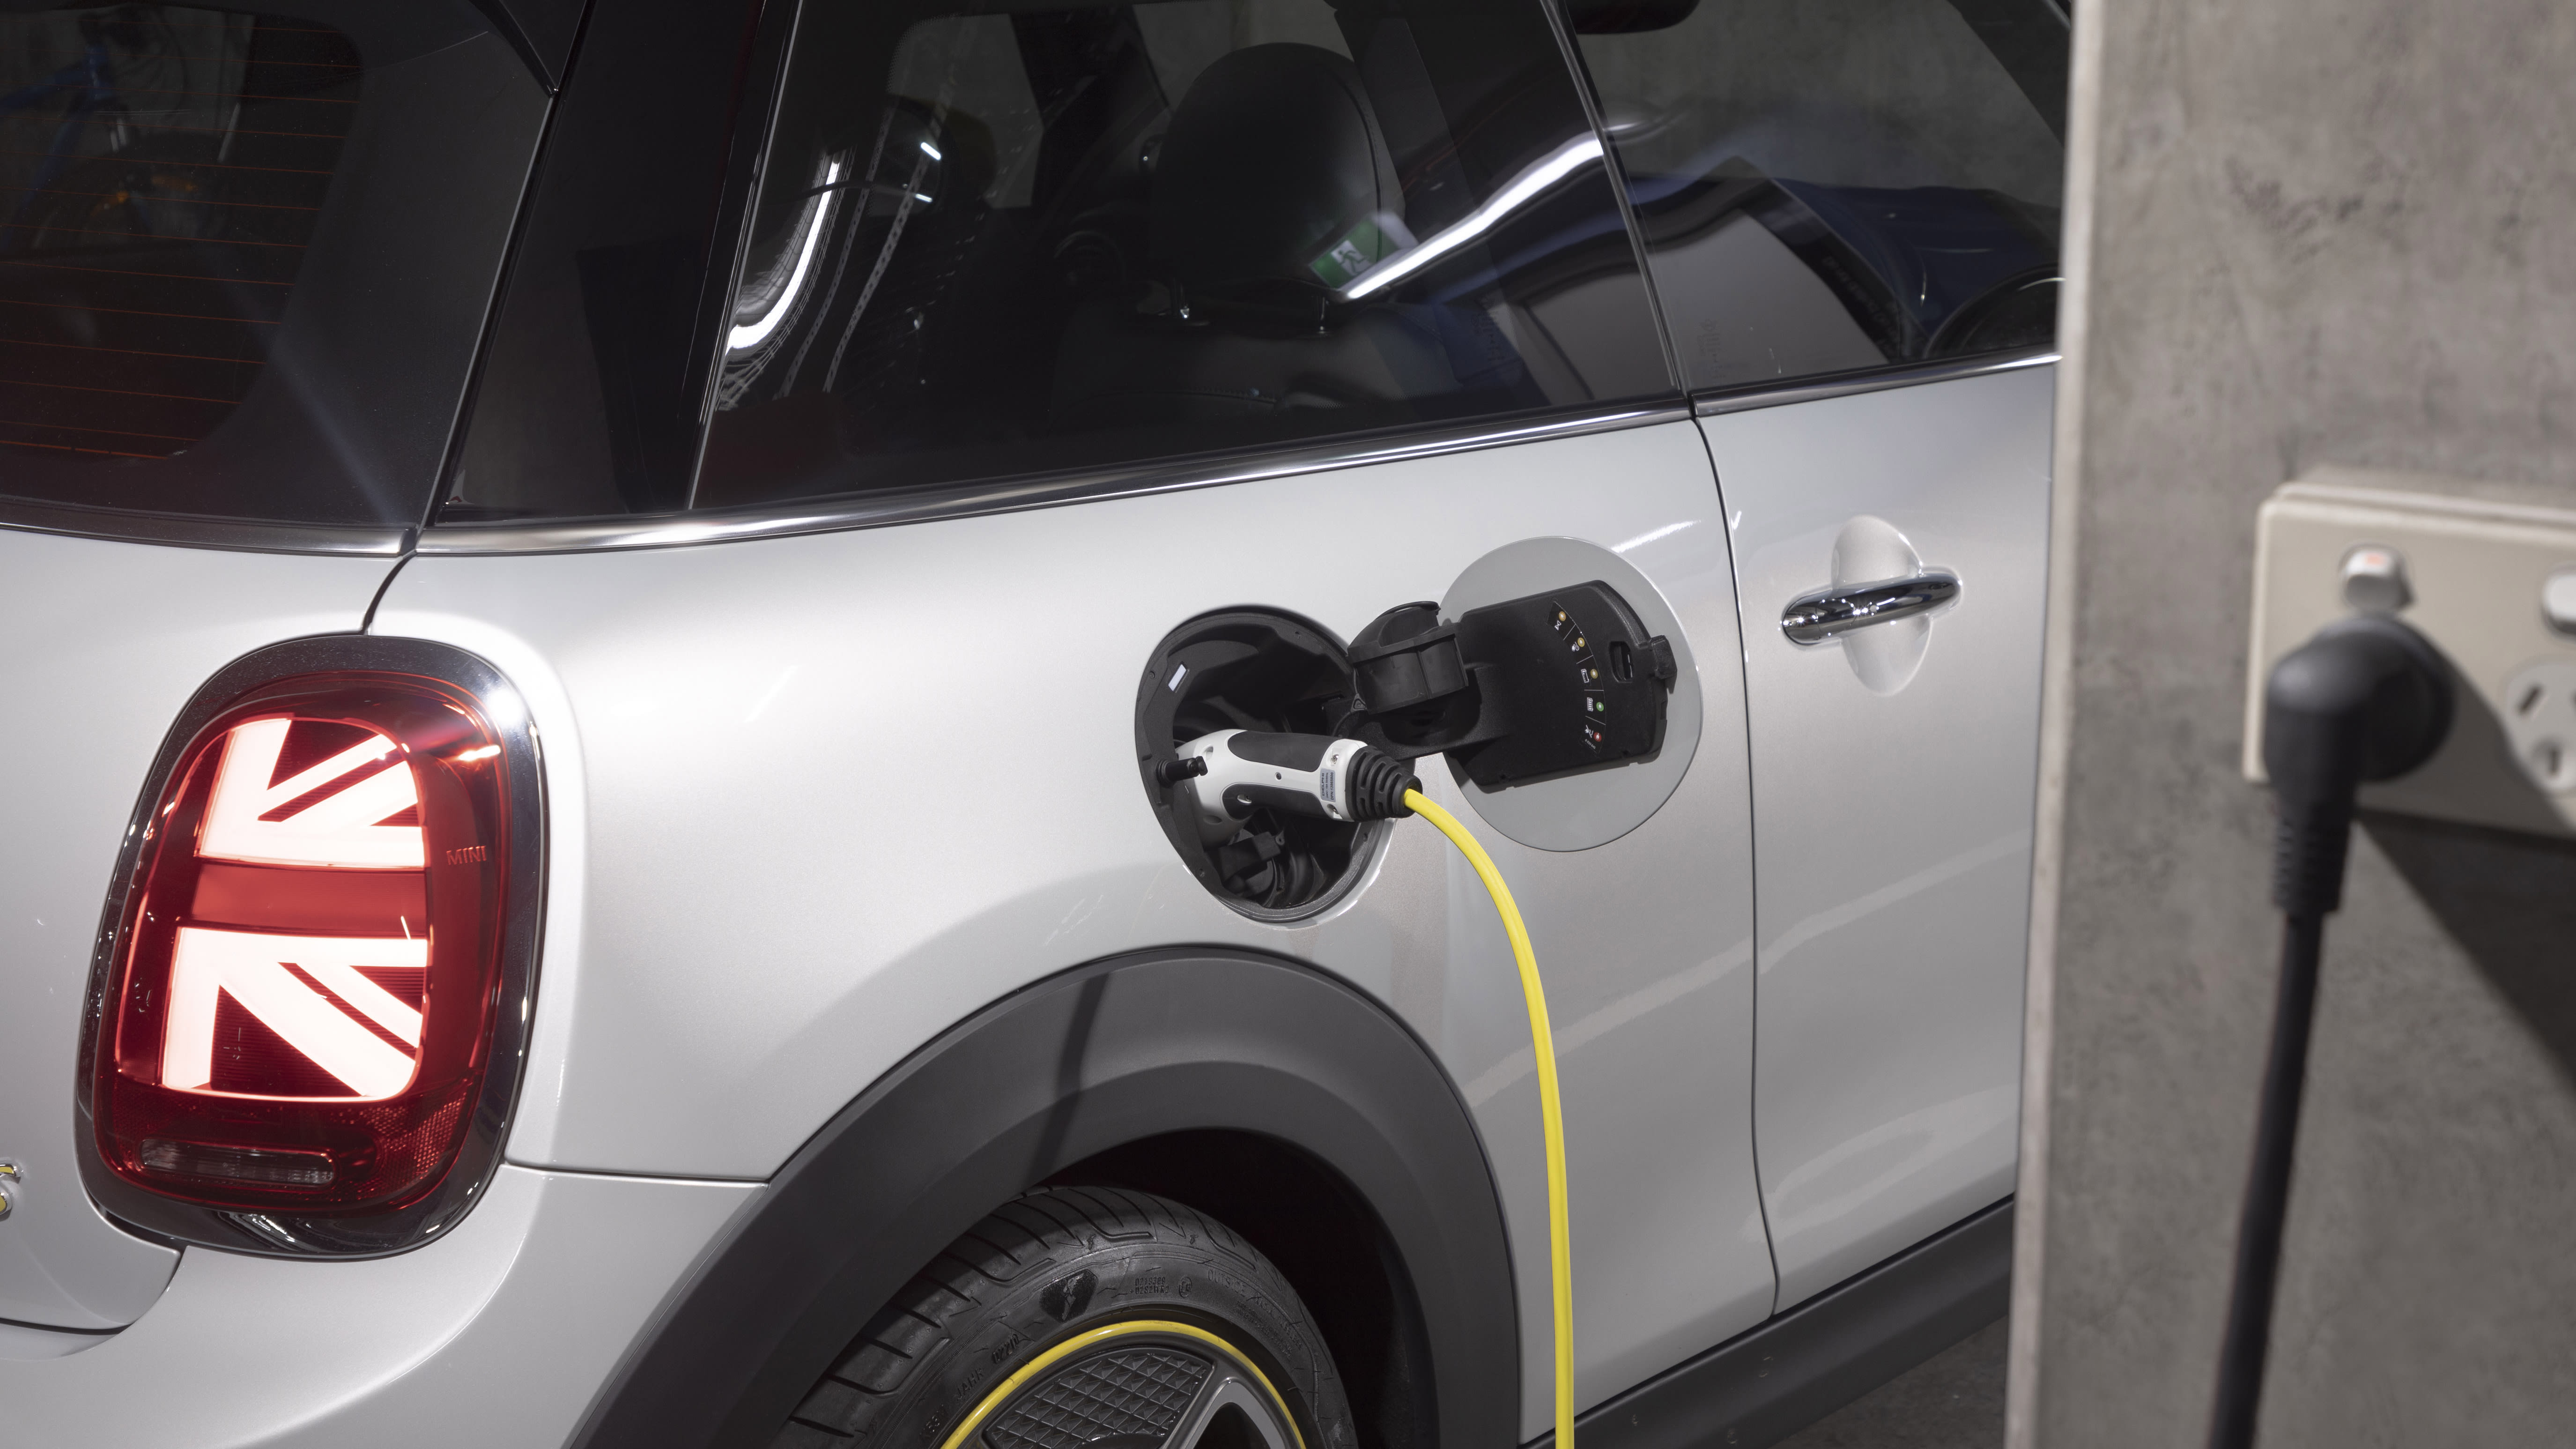 Mini to drop petrol and diesel by 2030 to become all-electric brand - report